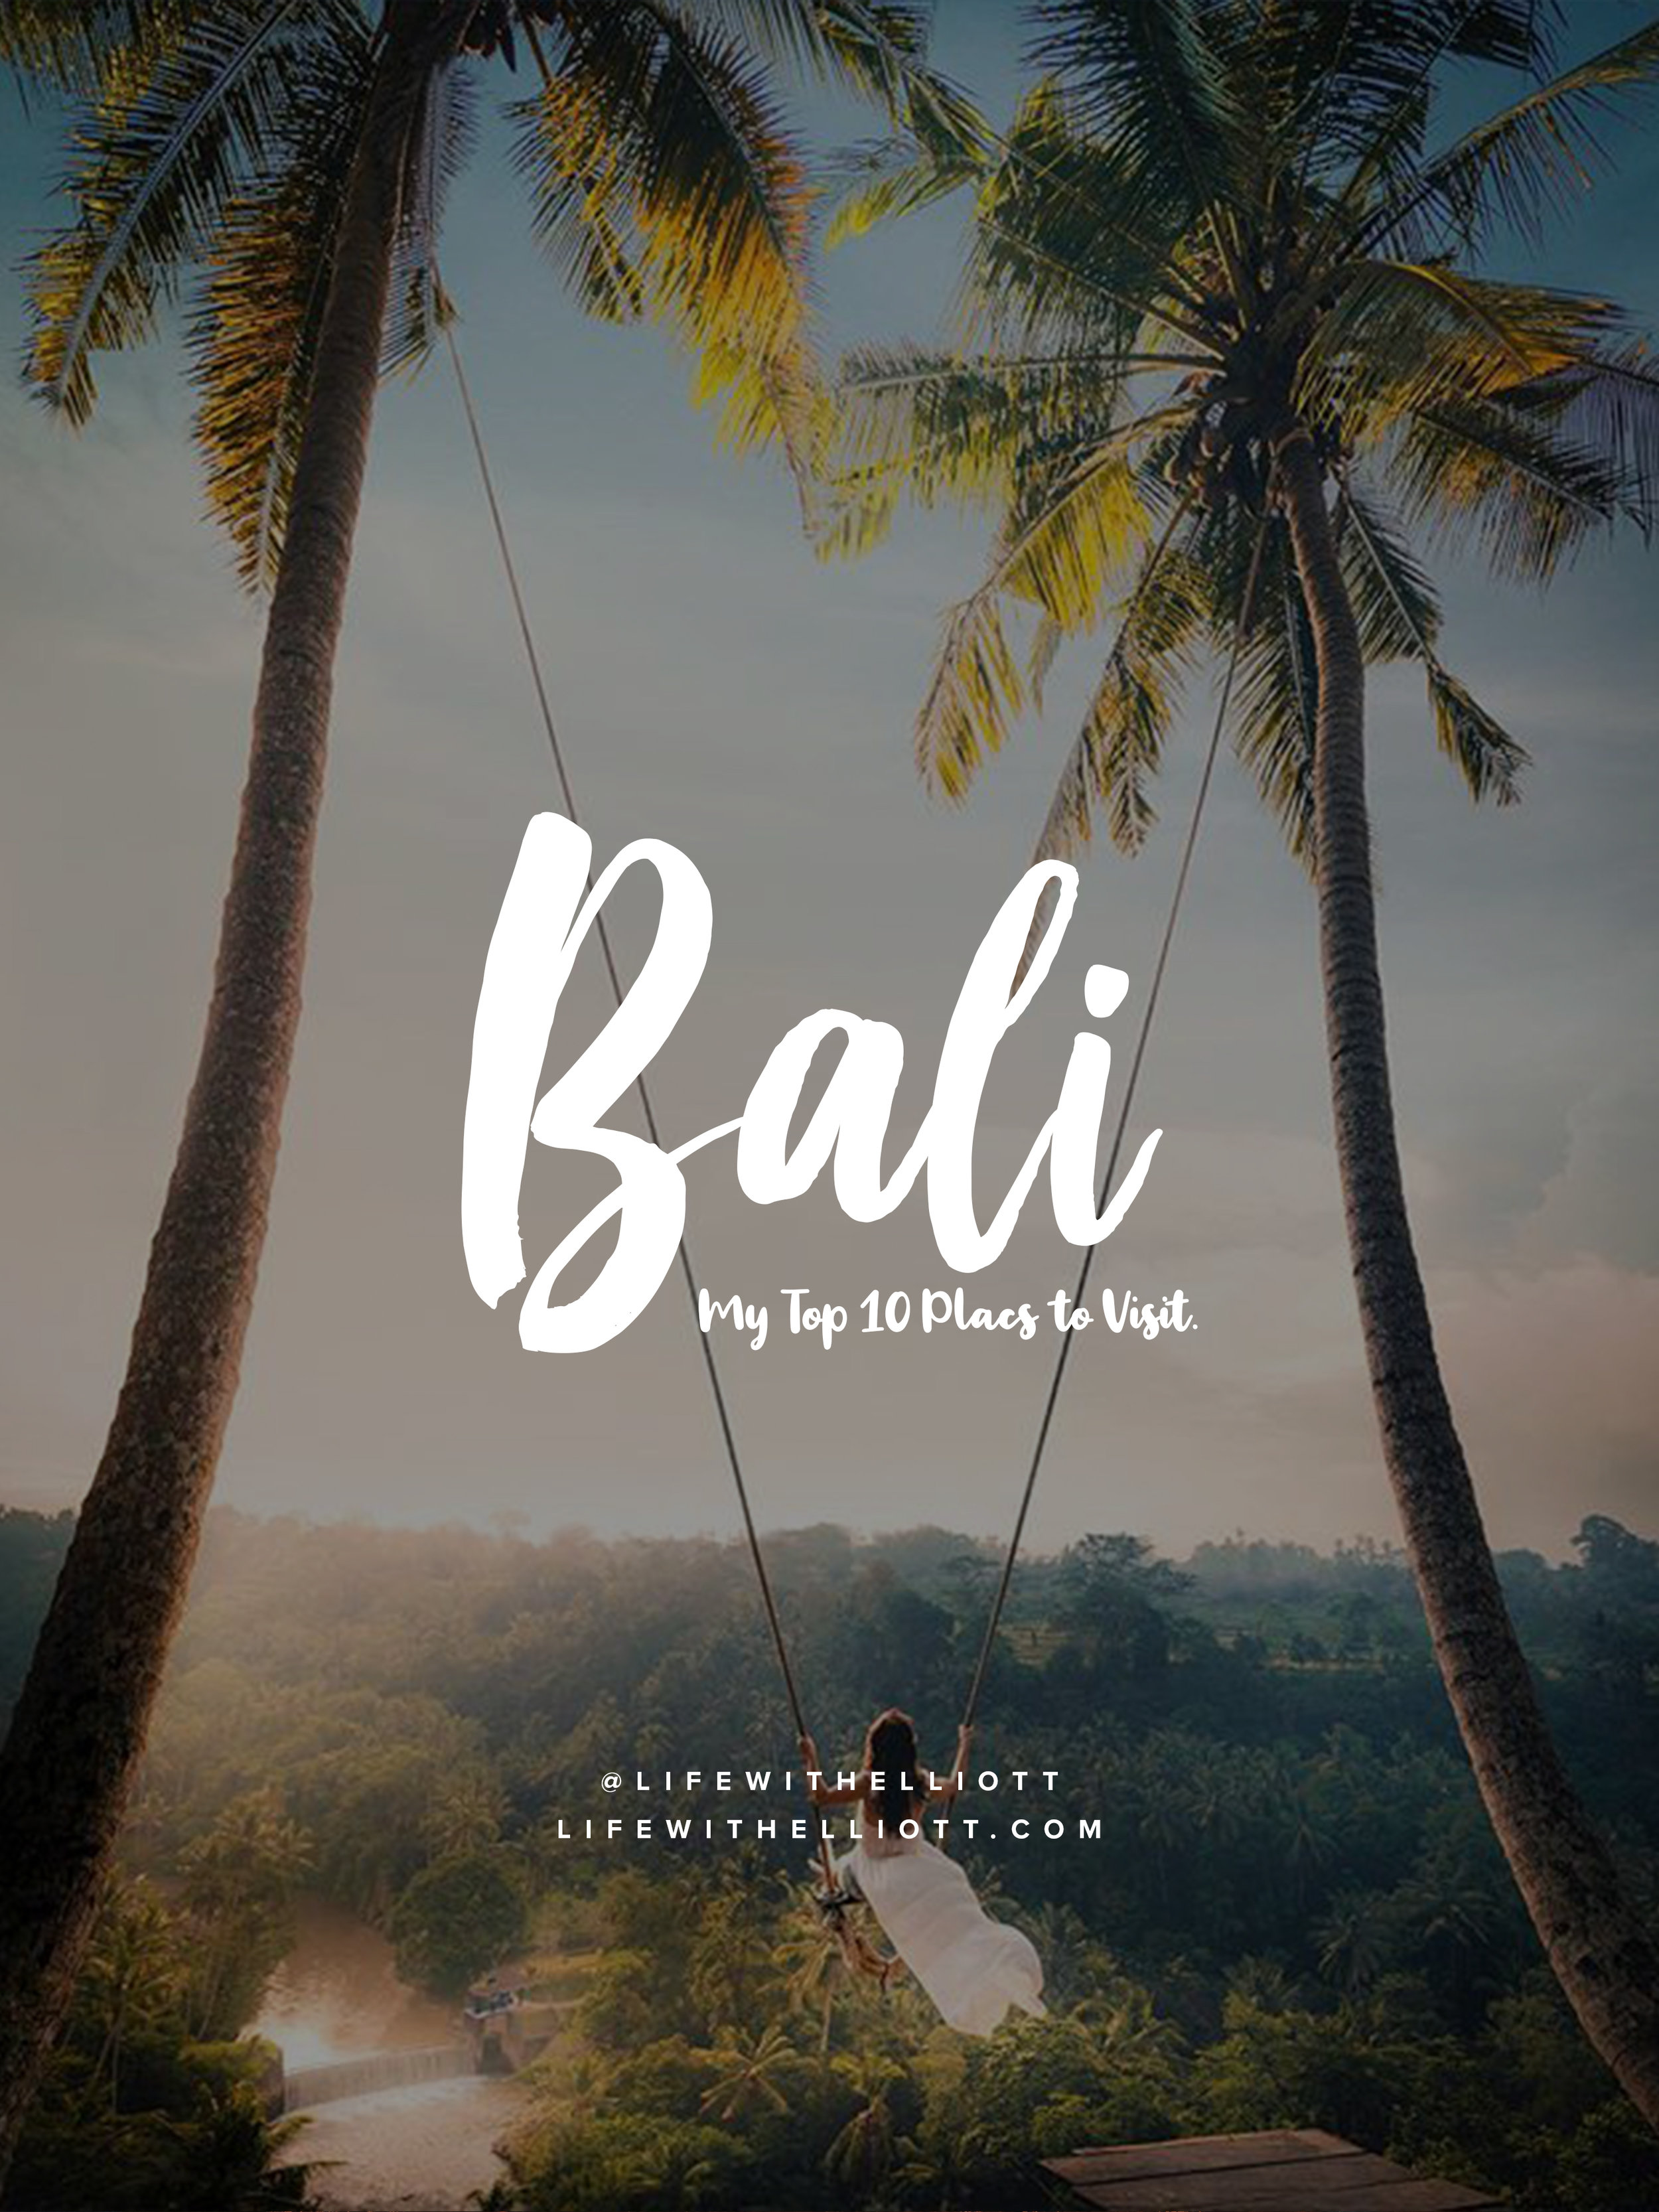 10 Amazing Places to Visit in Bali by LifewithElliott